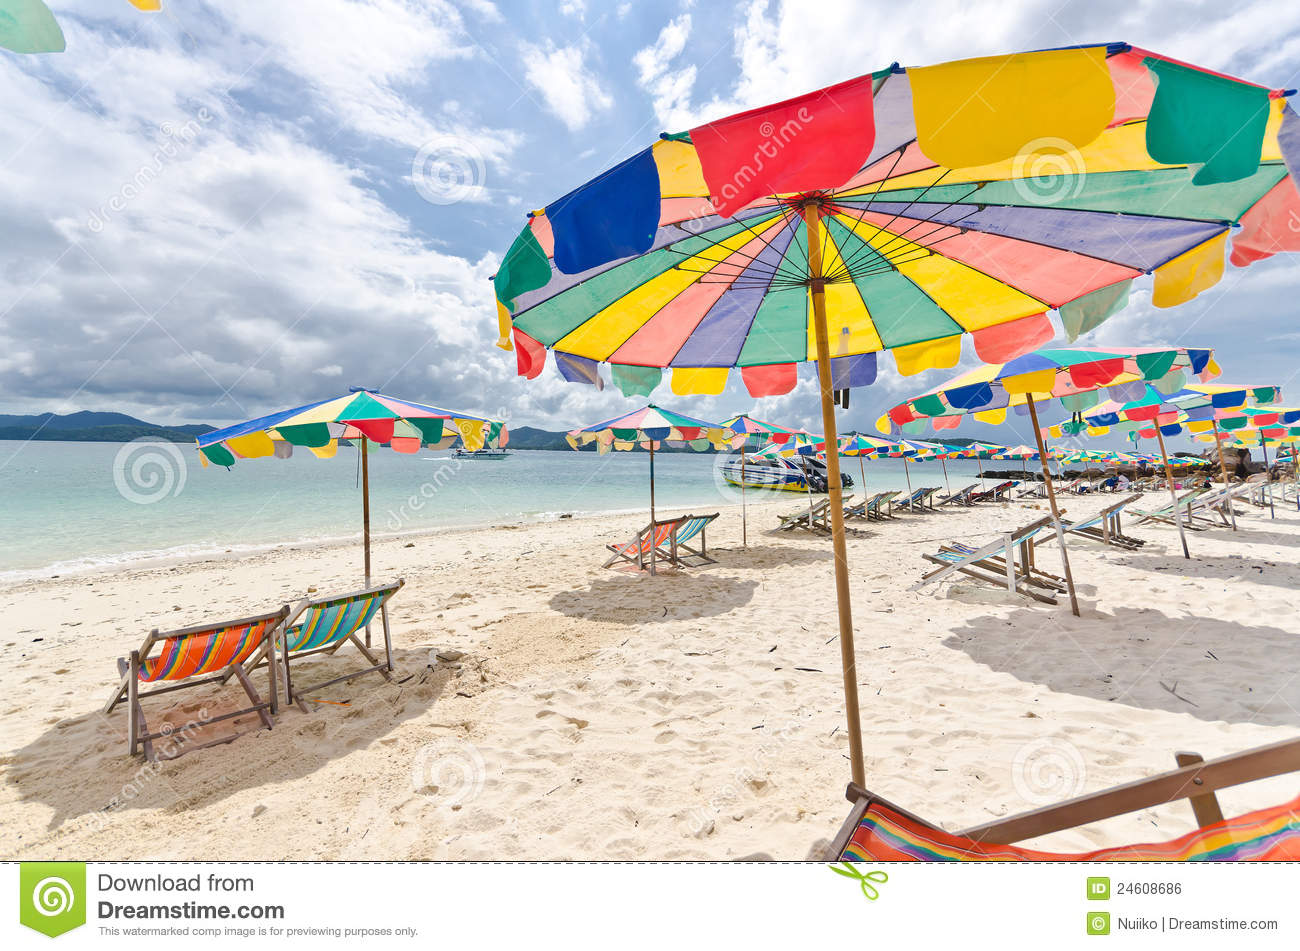 beach chairs and umbrellas pictures upholstered computer chair colorful umbrella on the in sunny